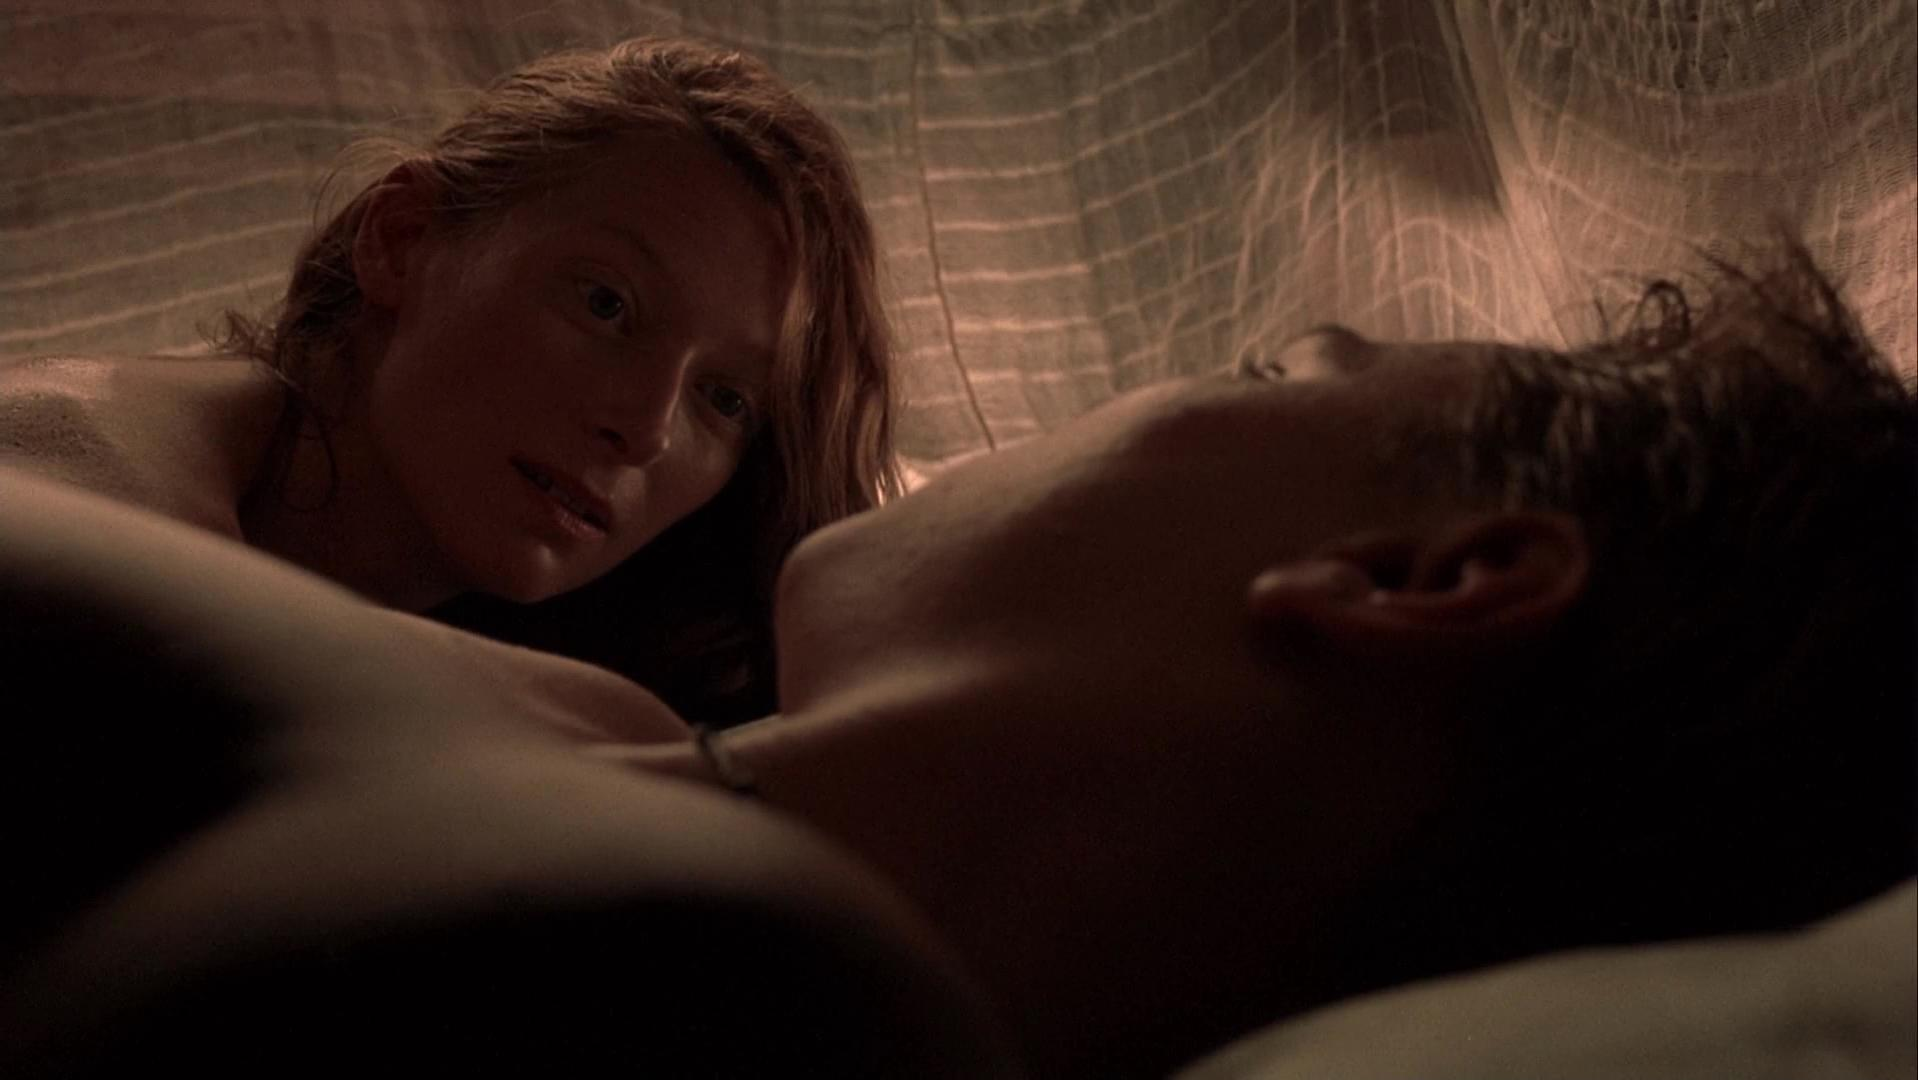 Tilda swinton sex